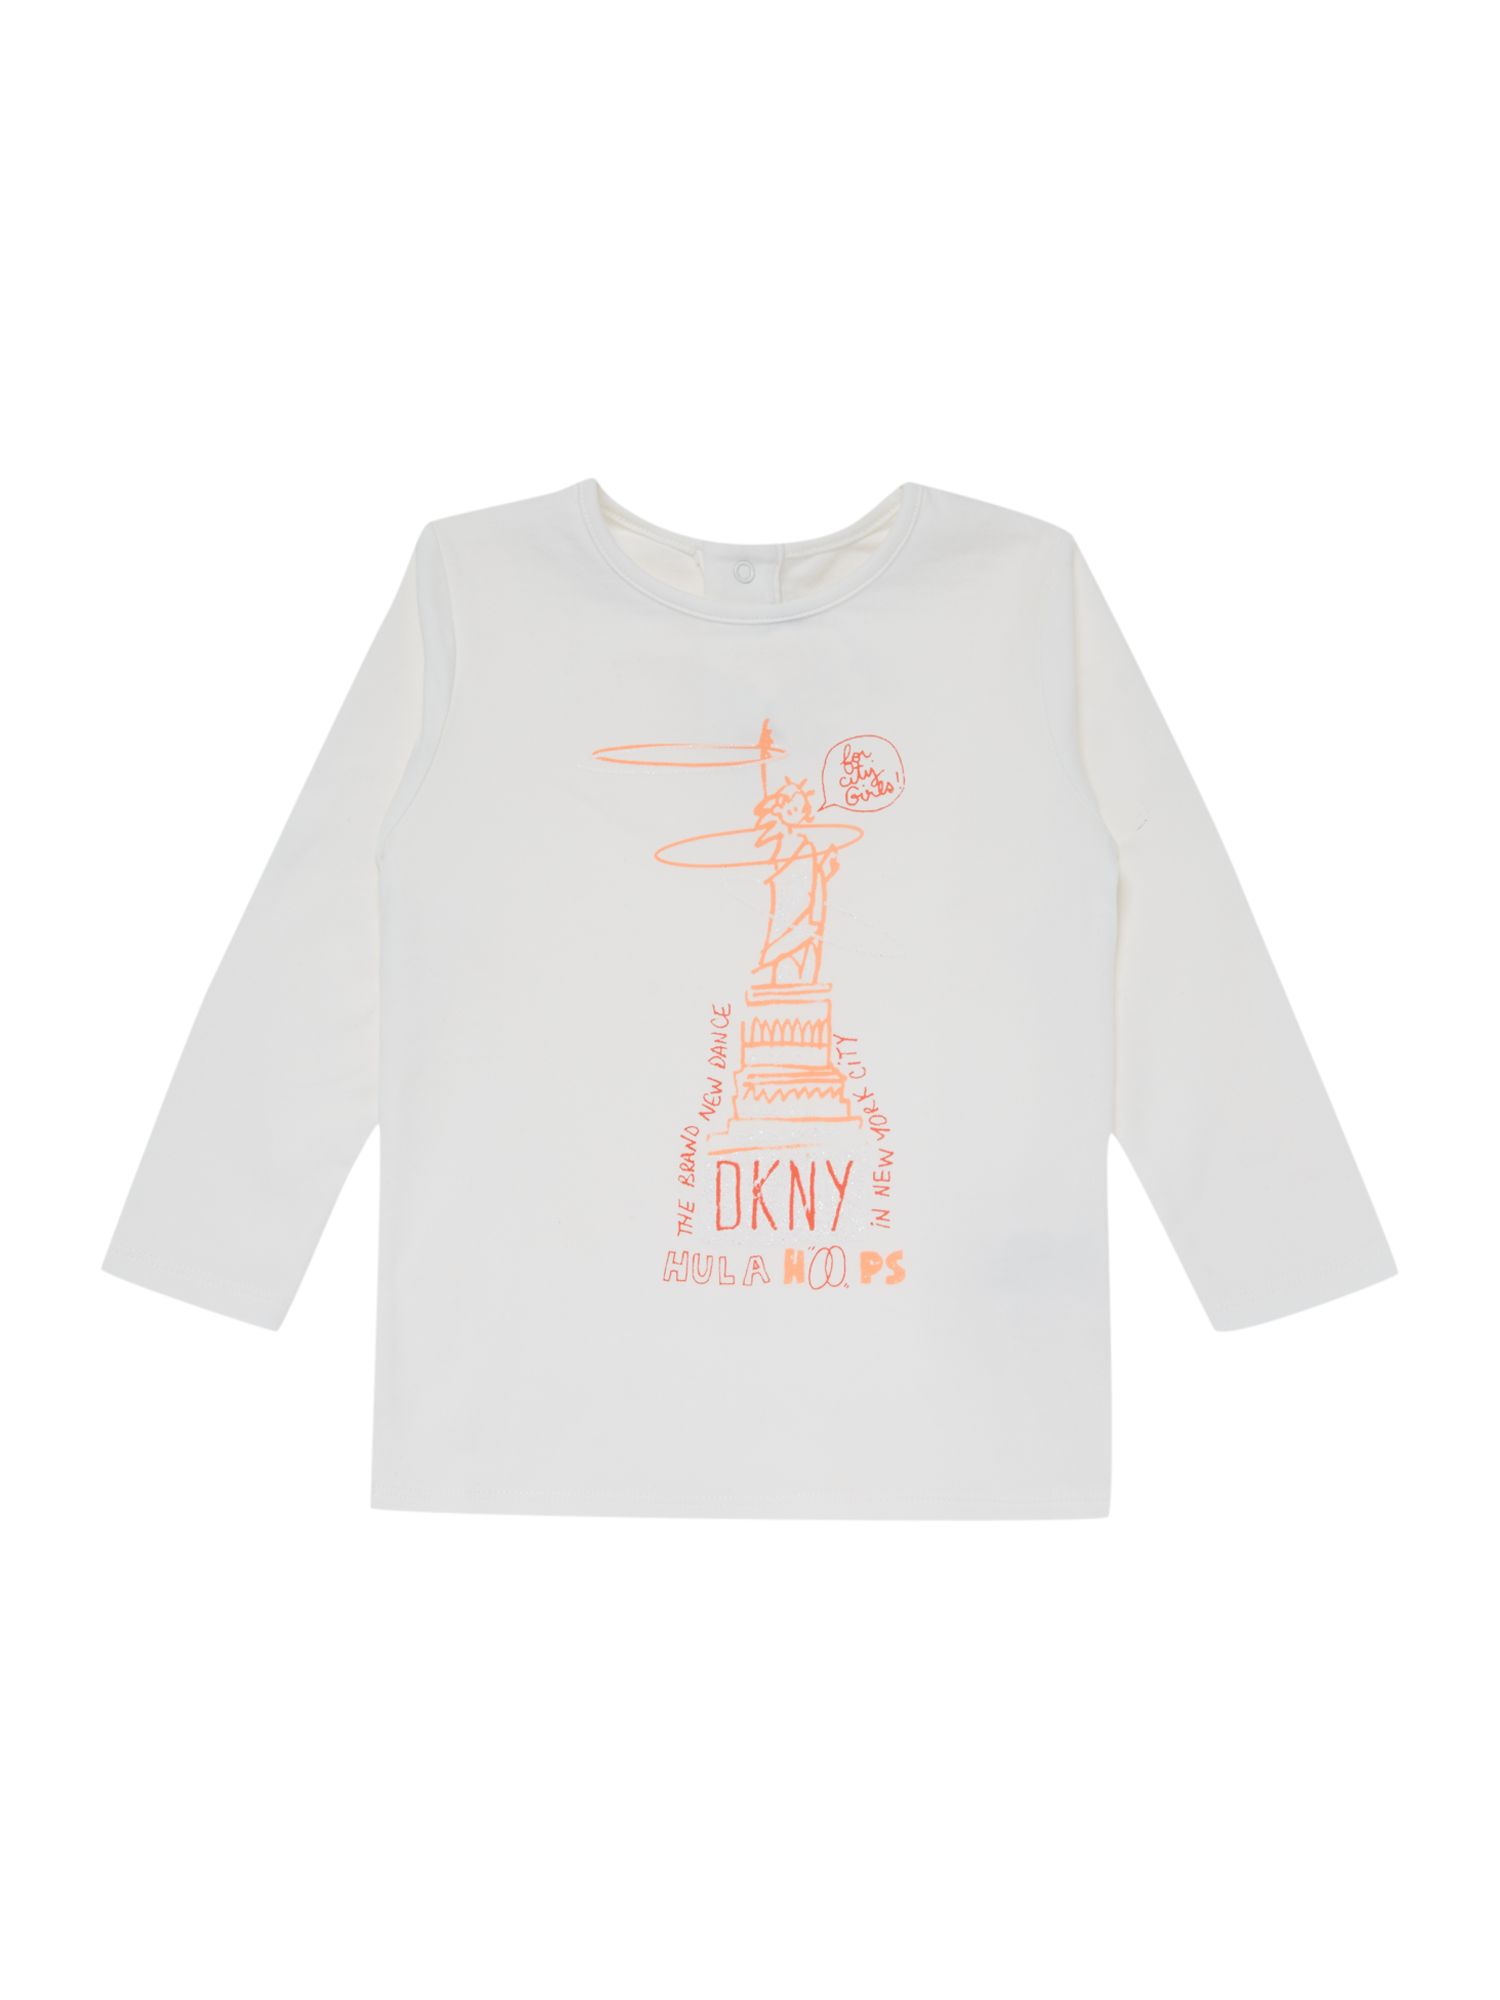 Girls jersey long sleeve t-shirt